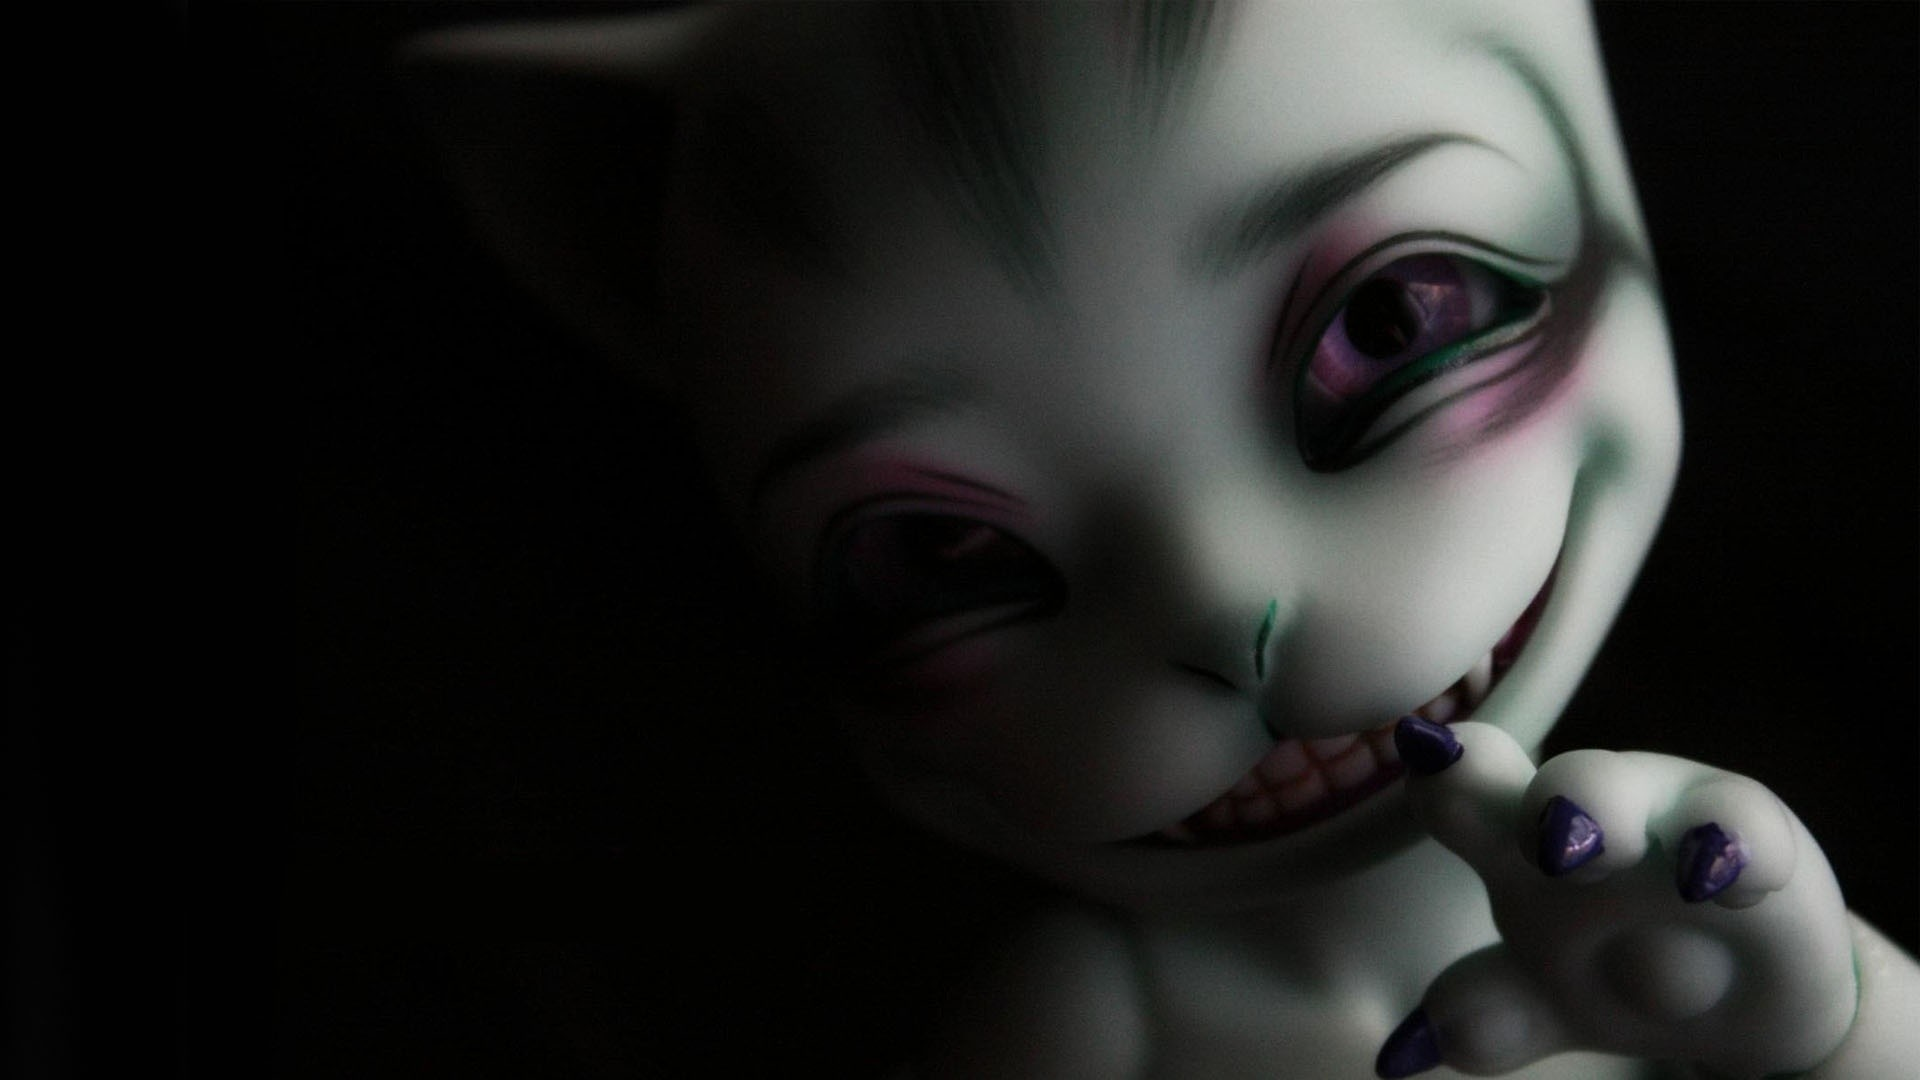 Cute creepypasta wallpaper 55 images 1920x1080 cute anime wallpapers android cute hd music gril hd naruto love hd wallpapers pinterest hd wallpaper wallpaper and wallpapers android voltagebd Images